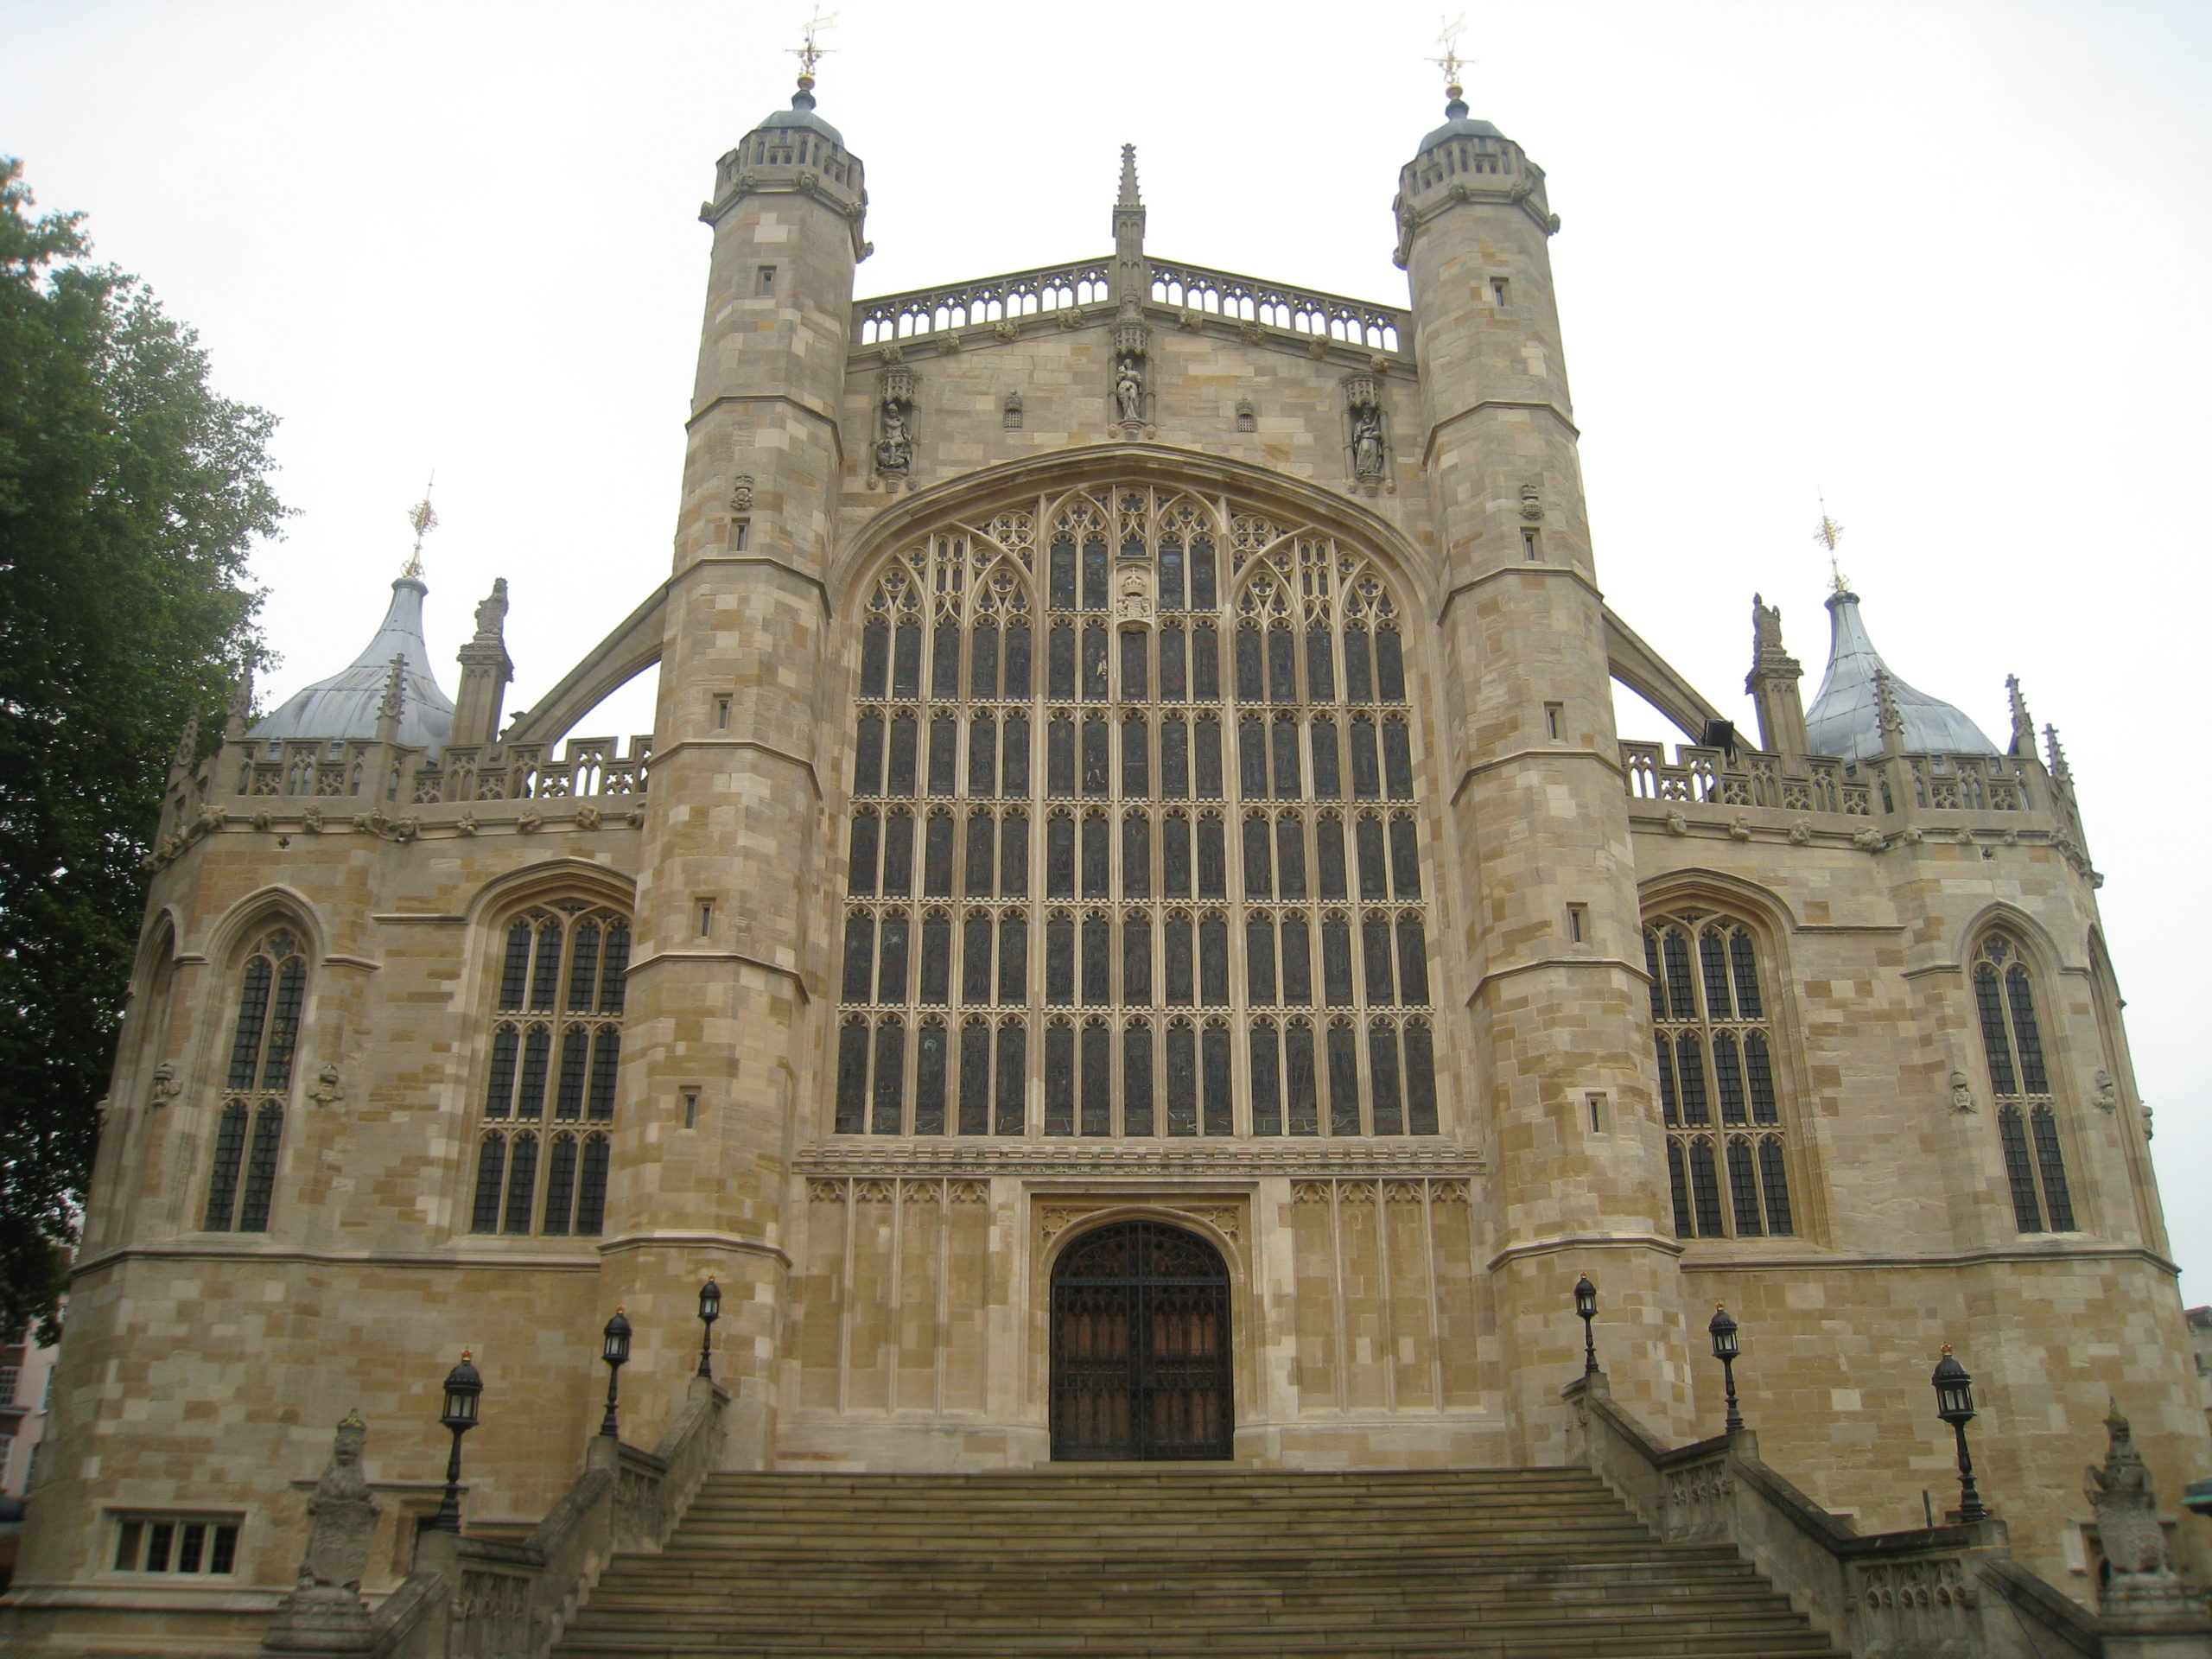 Exterior of Saint George's Chapel at Windsor Castle. Photo by Michael Madrinkian.